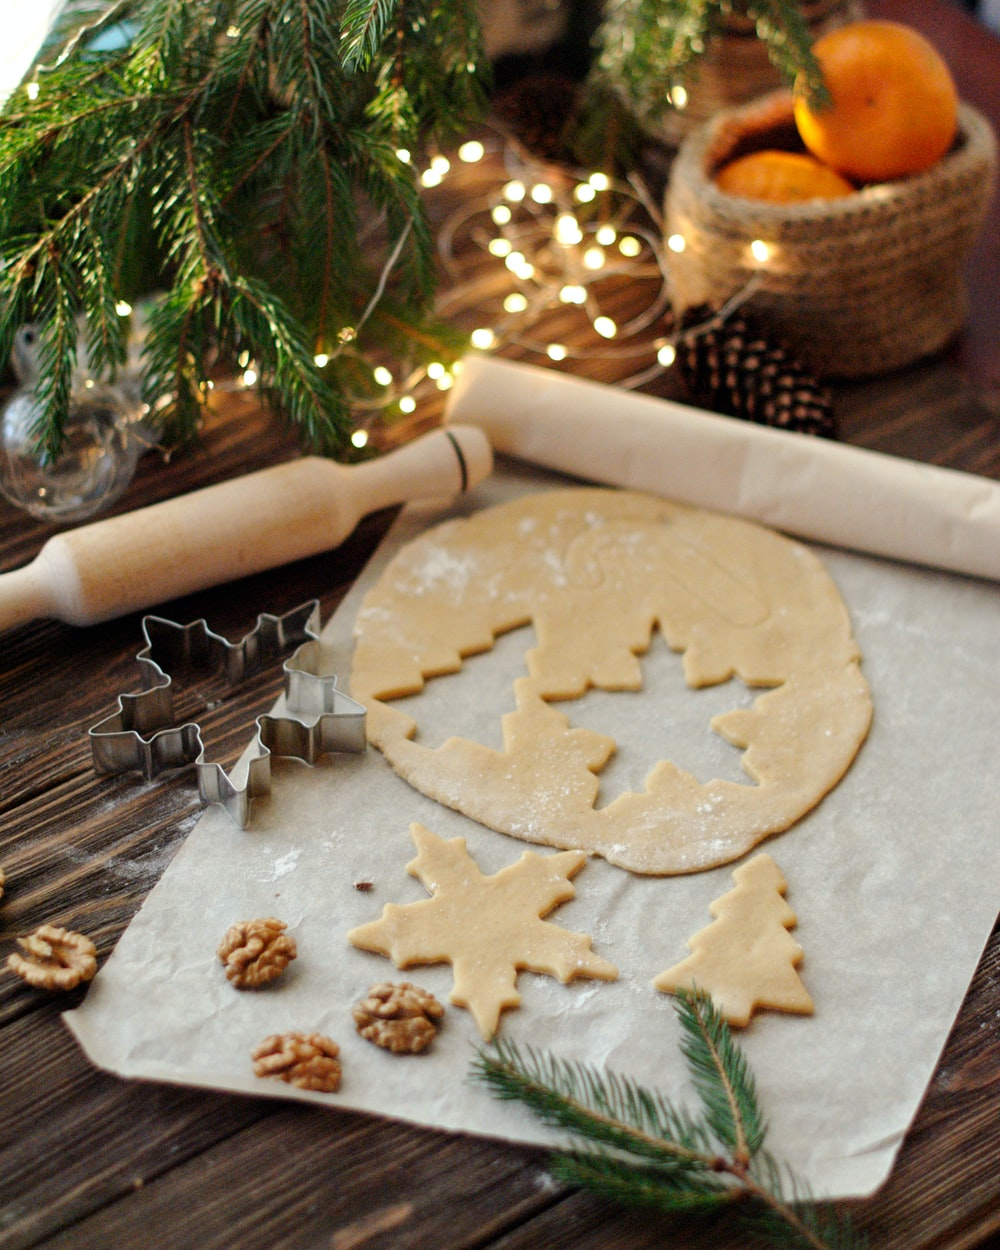 cookie cutter and rolling pin beside string lights